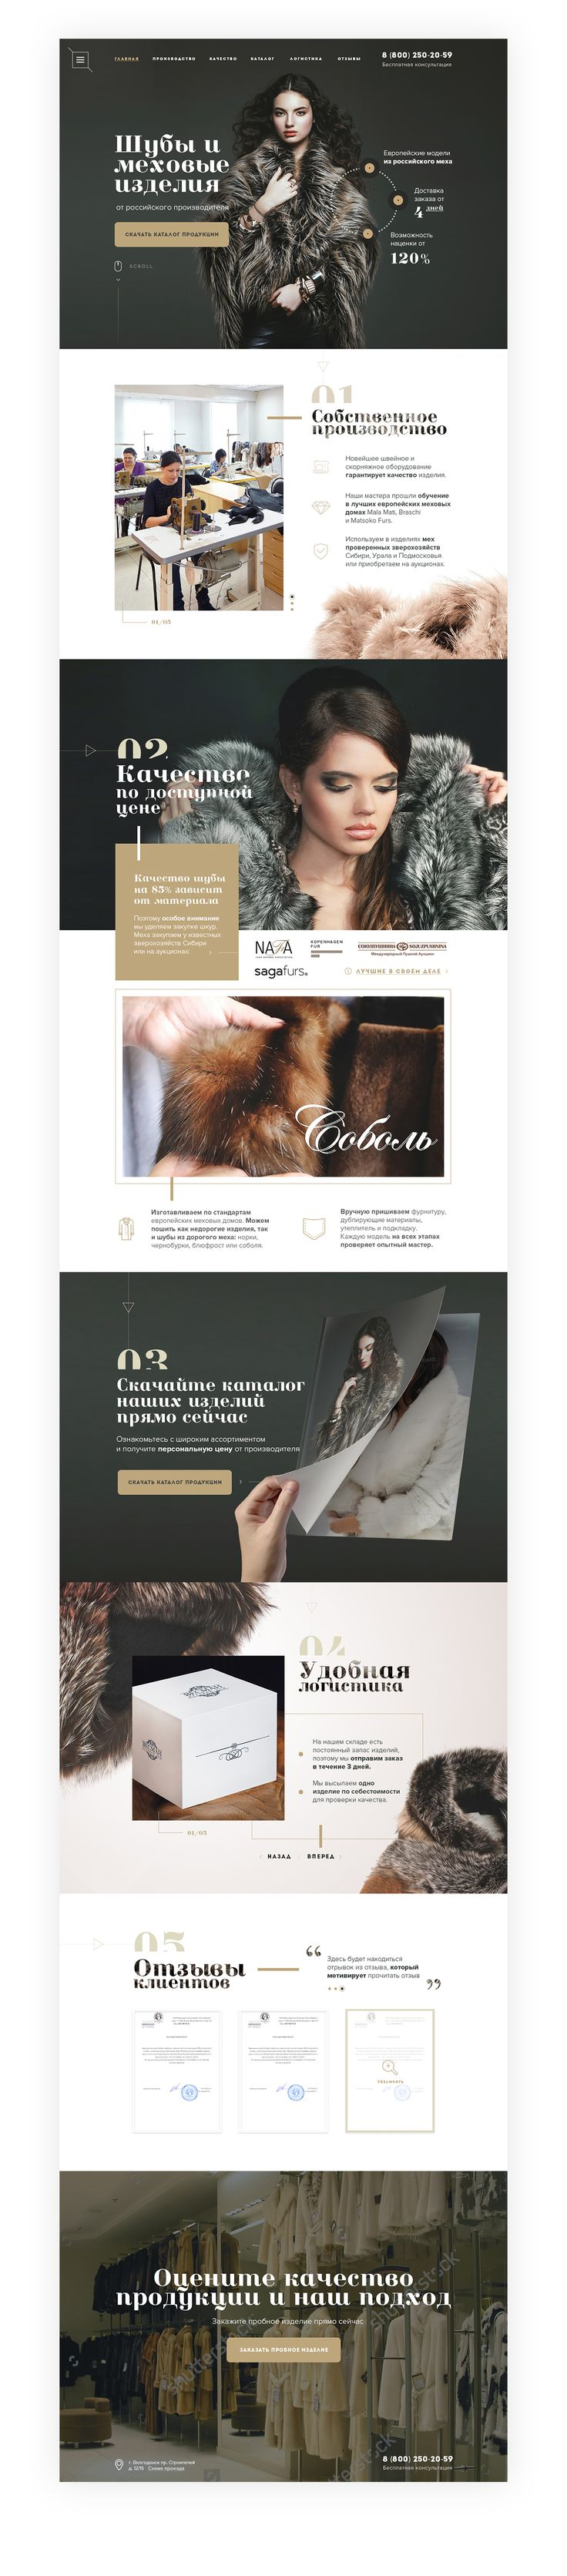 art fashion project - onepage store Template on Behance